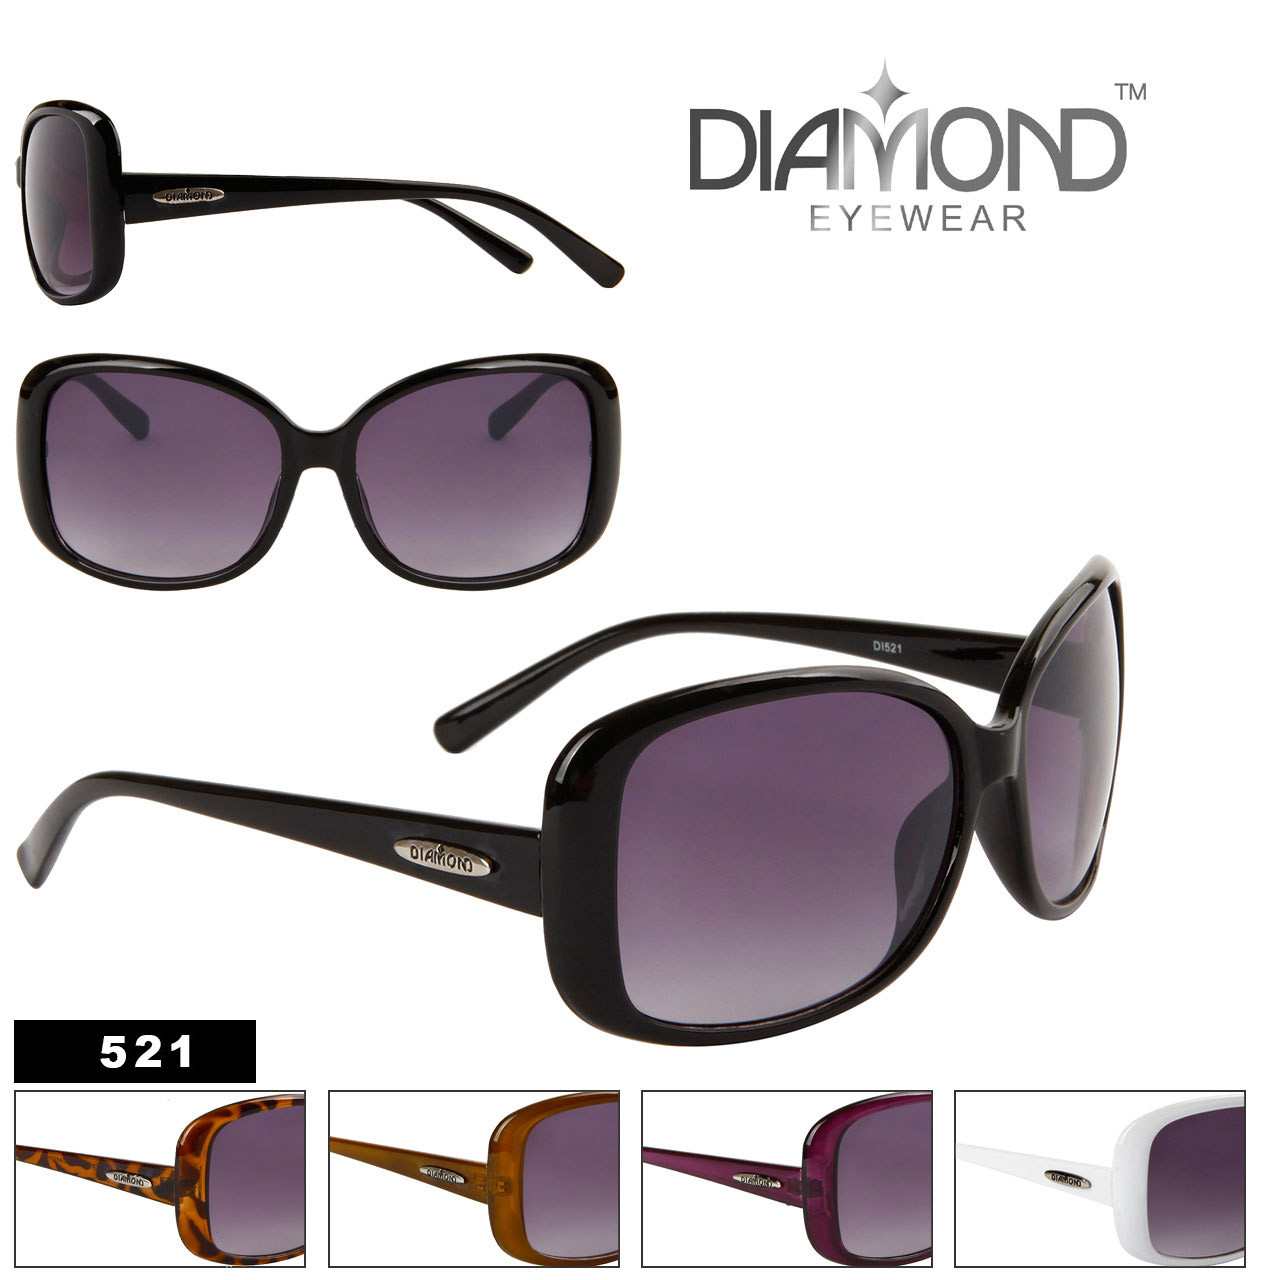 Large Framed Fashion Glasses : Diamond Eyewear Fashion Sunglasses Large Frame Designer ...